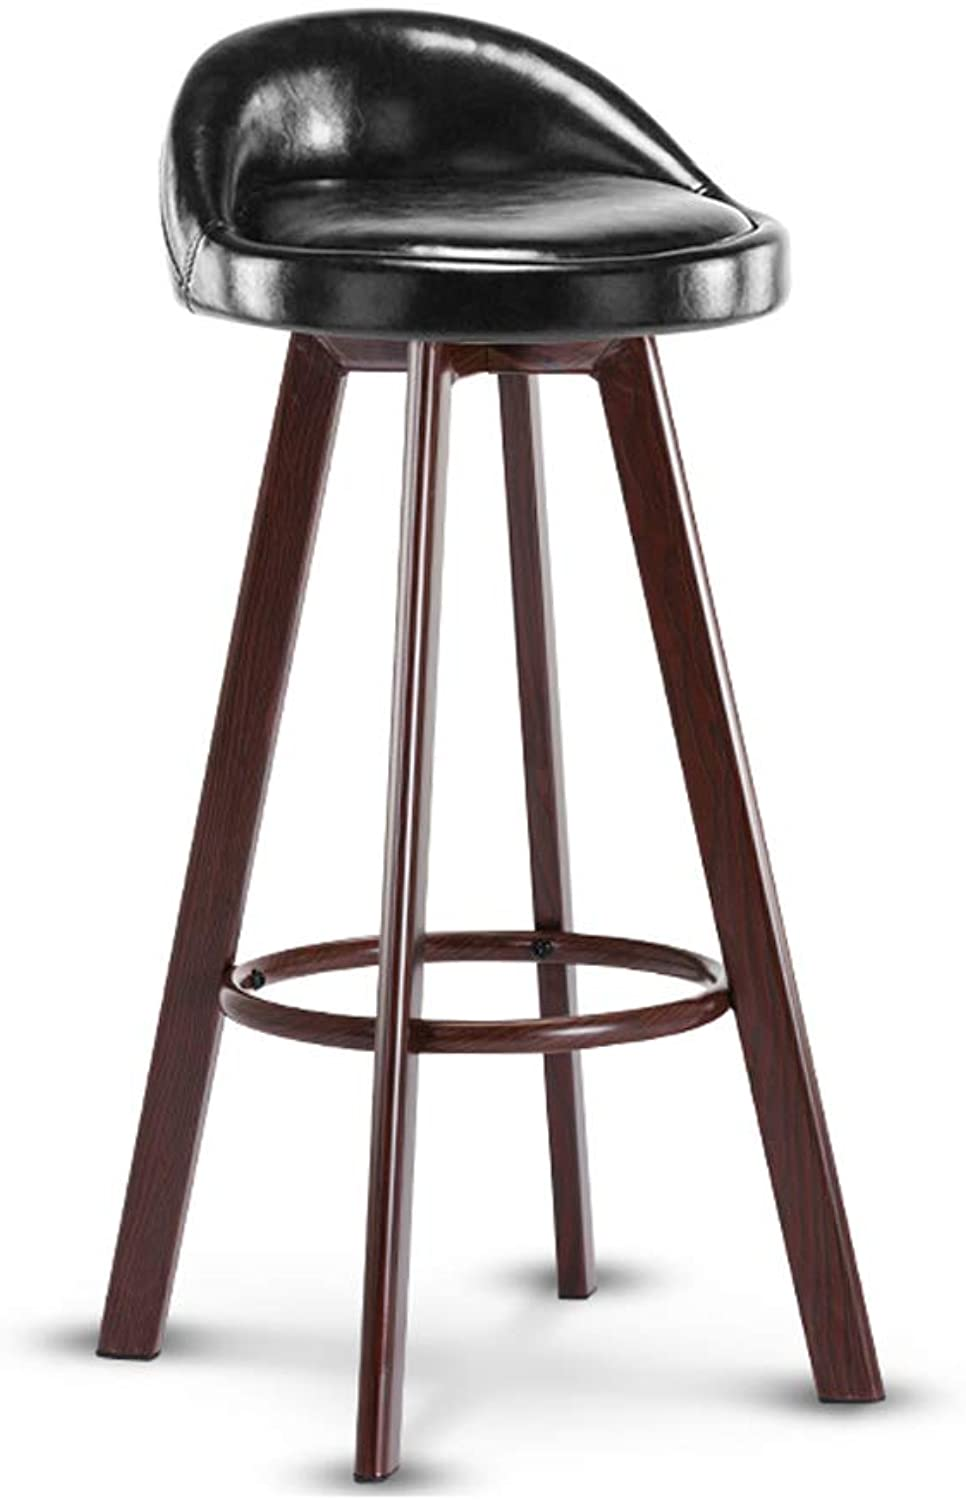 Bar Stool High Stool Kitchen Chair Curved Seat Bar Chair,Oil Wax Leather Iron Chair Legs, for Counter Cafe Kitchen Breakfast Pub,3 colors